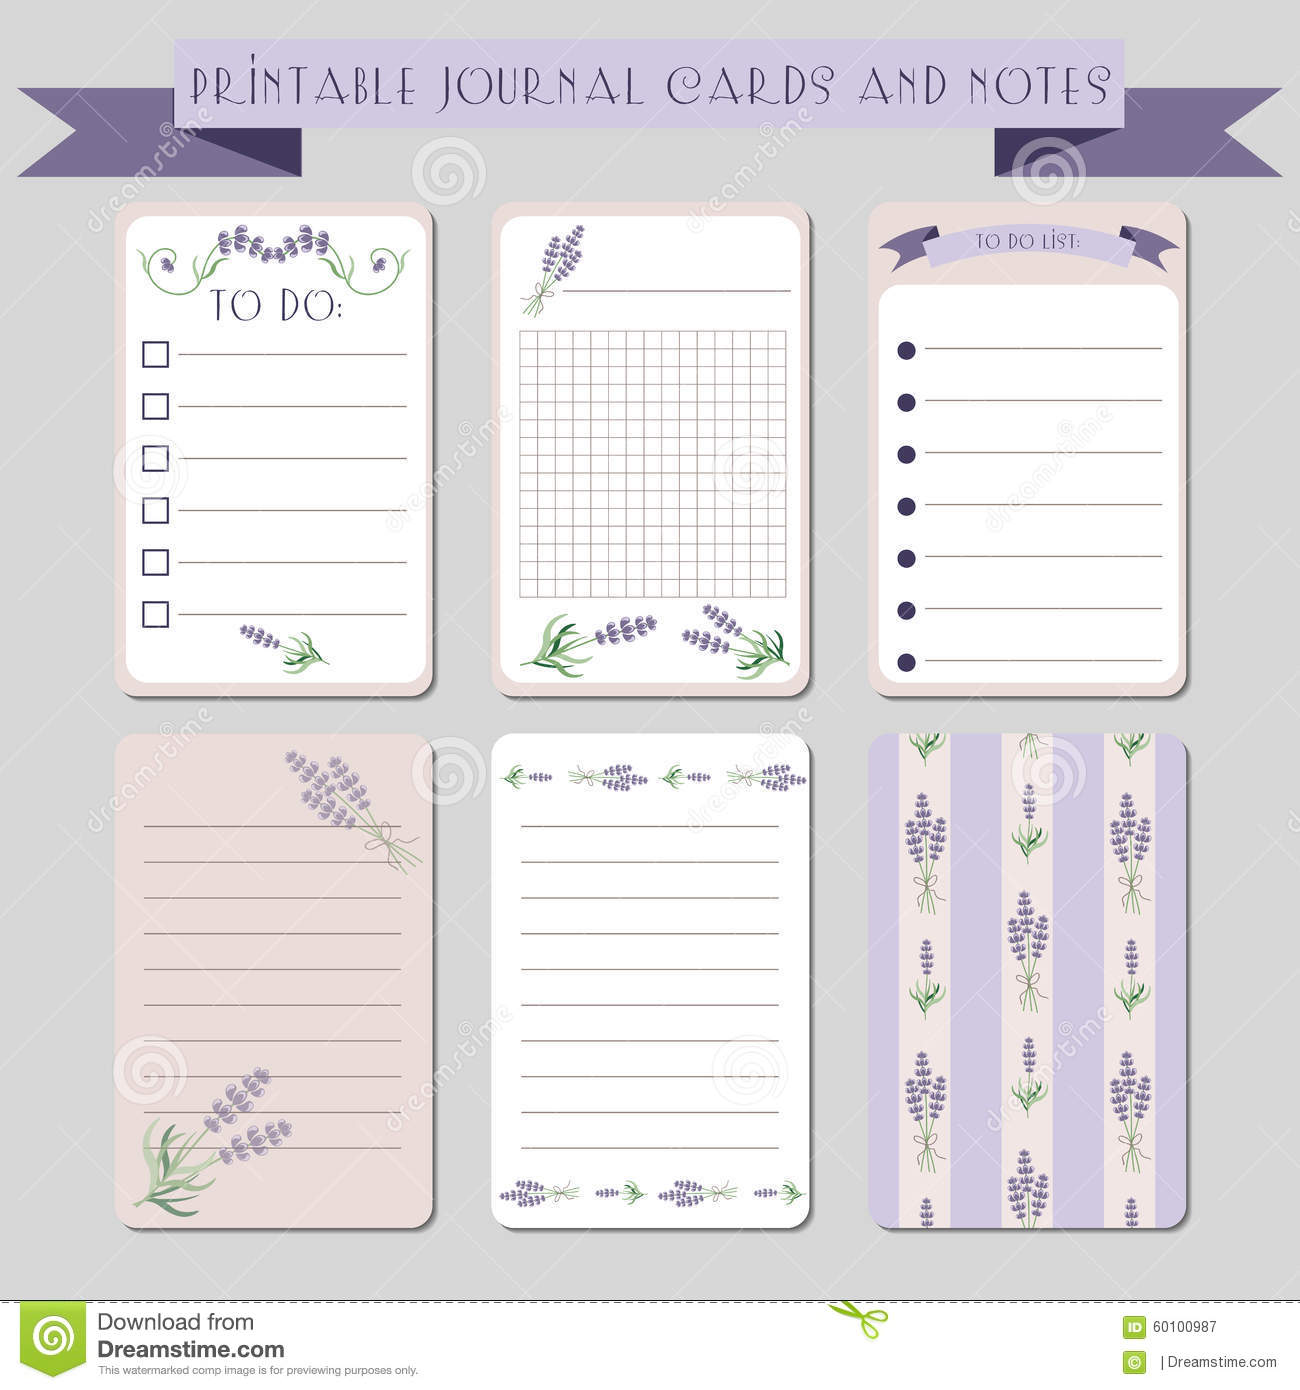 photograph relating to Printable Notepad identified as Printable Notes, Magazine Playing cards With Lavender Examples